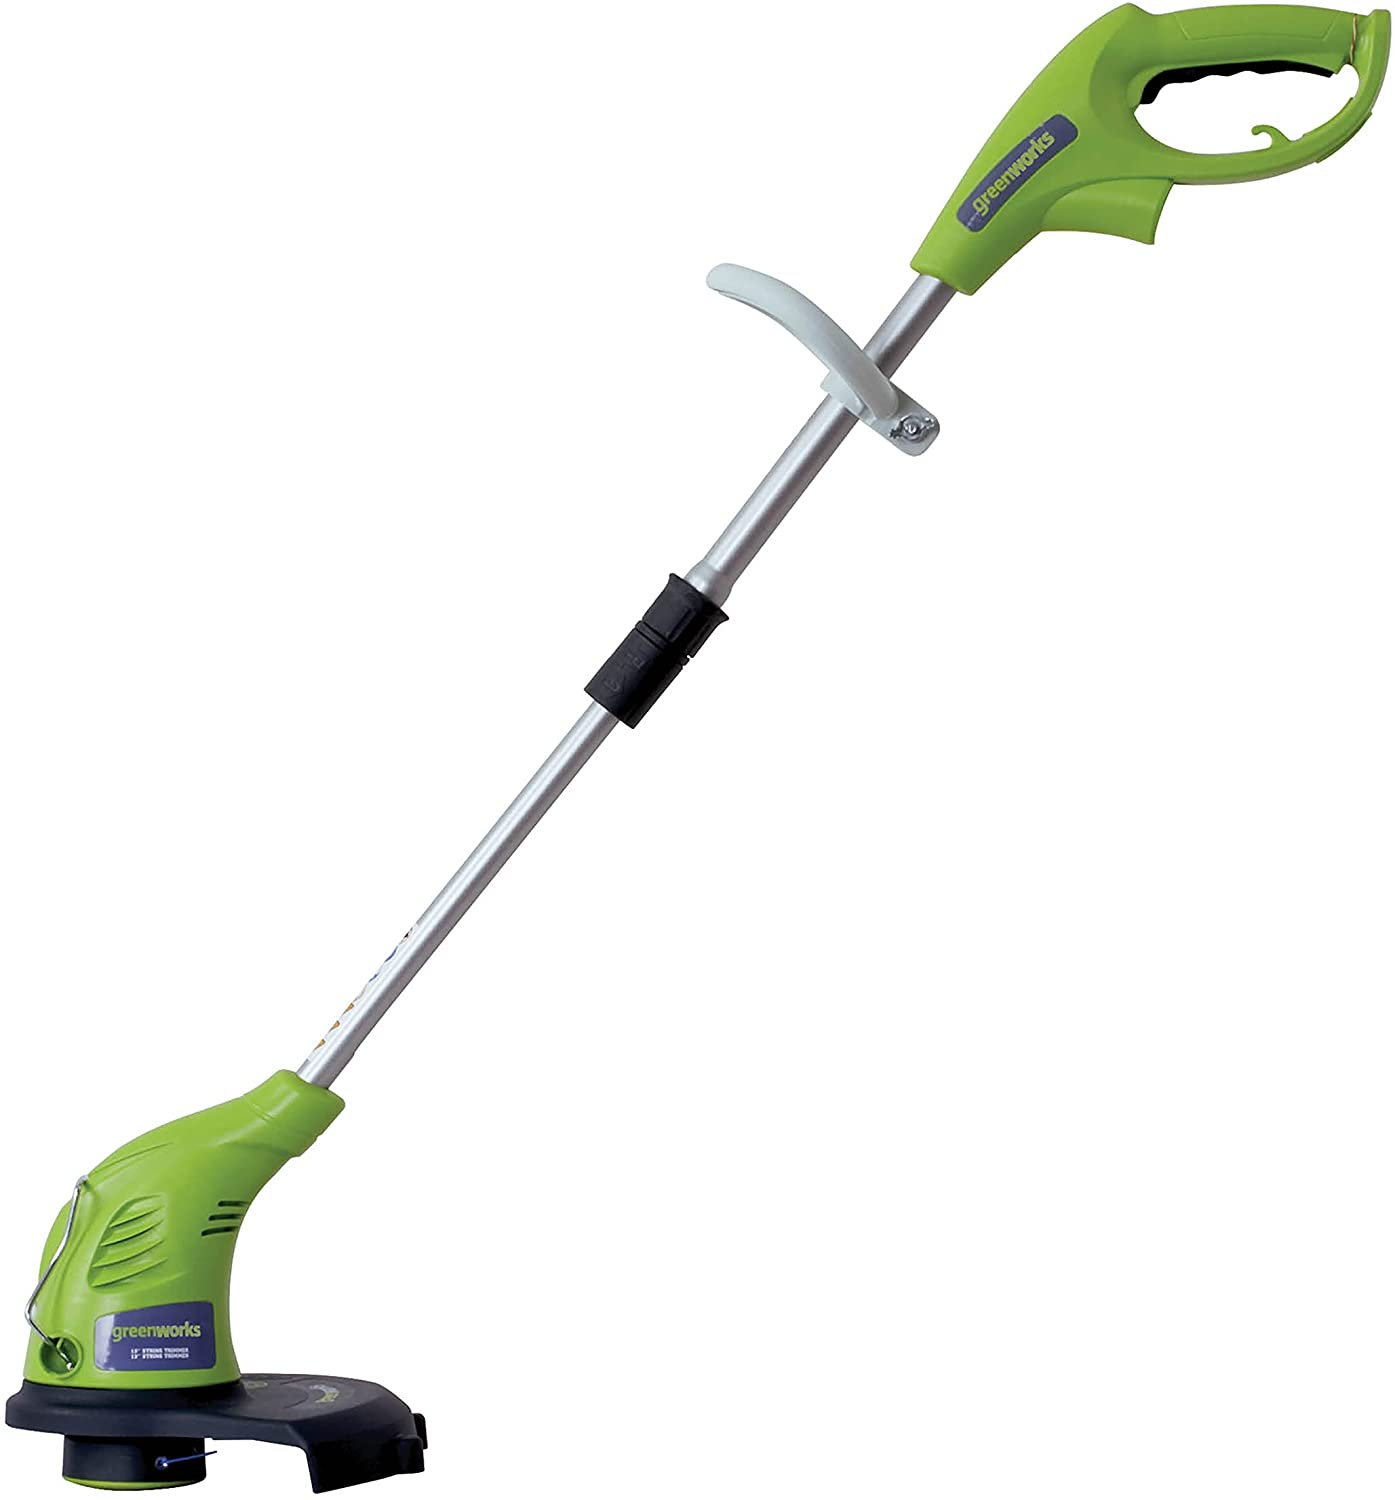 Greenworks 21212 Corded String Trimmer - best string trimmers for the money